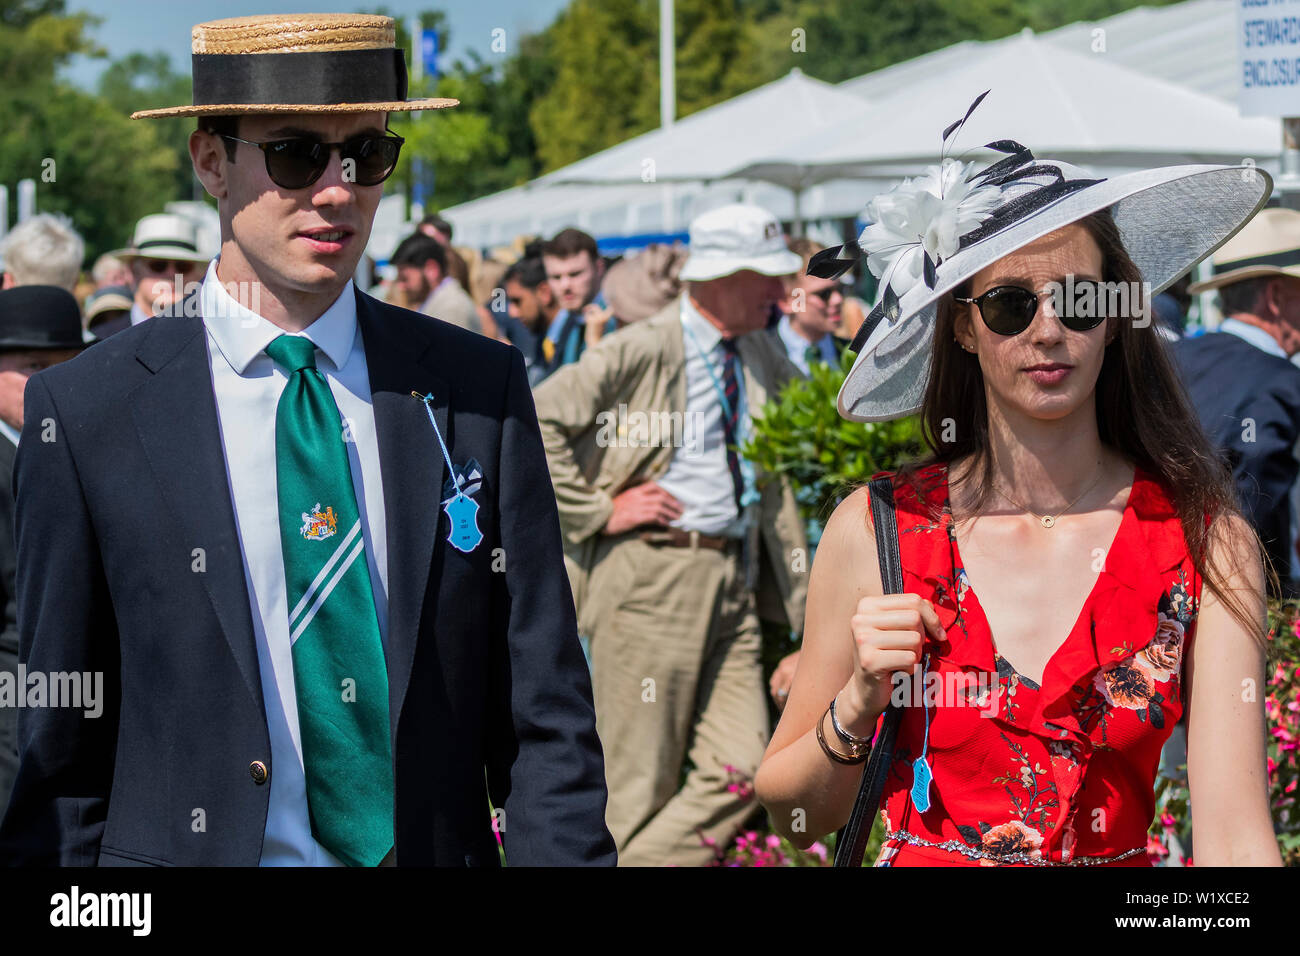 Henley-on-Thames, UK. 3rd July 2019. Big hats and rowing blazers are the order of the day as spectators relax in in the Stewards Enclosure along the river bank - Rowing at the 2019 Henley Royal Regatta, Henley-on-Thames. Credit: Guy Bell/Alamy Live News - Stock Image